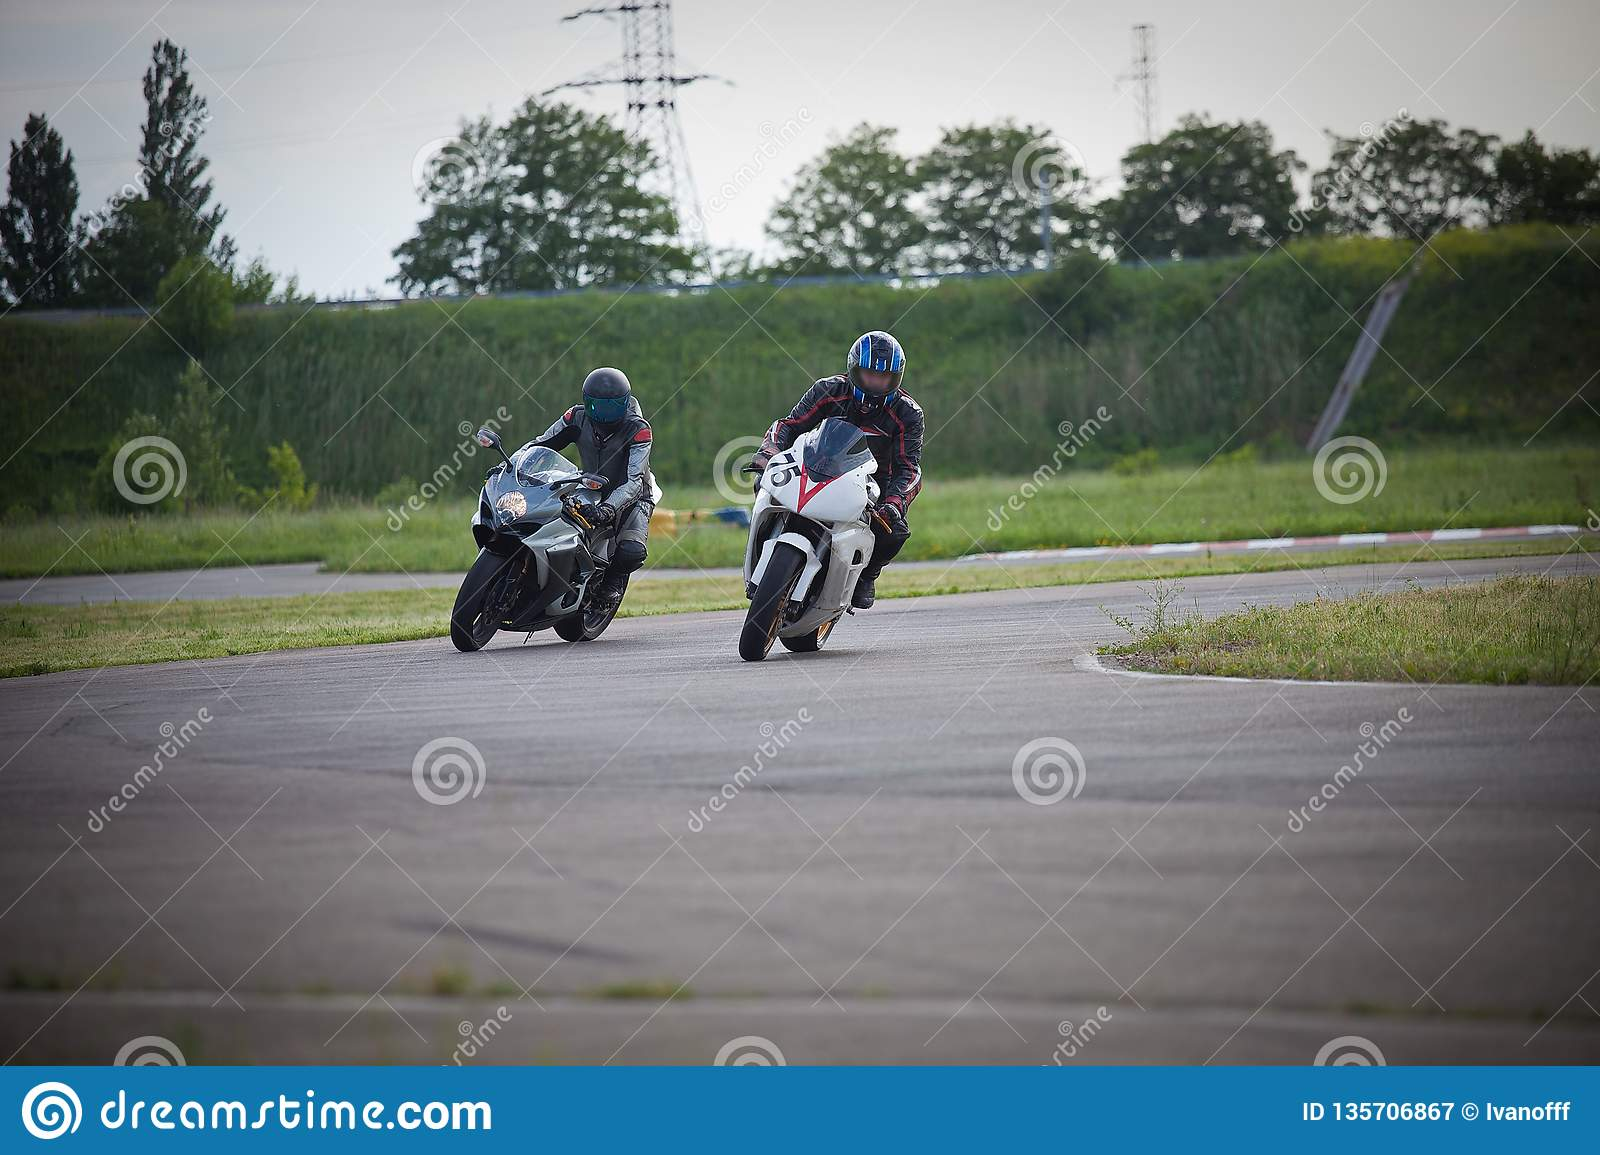 Race between two motorcycle athletes